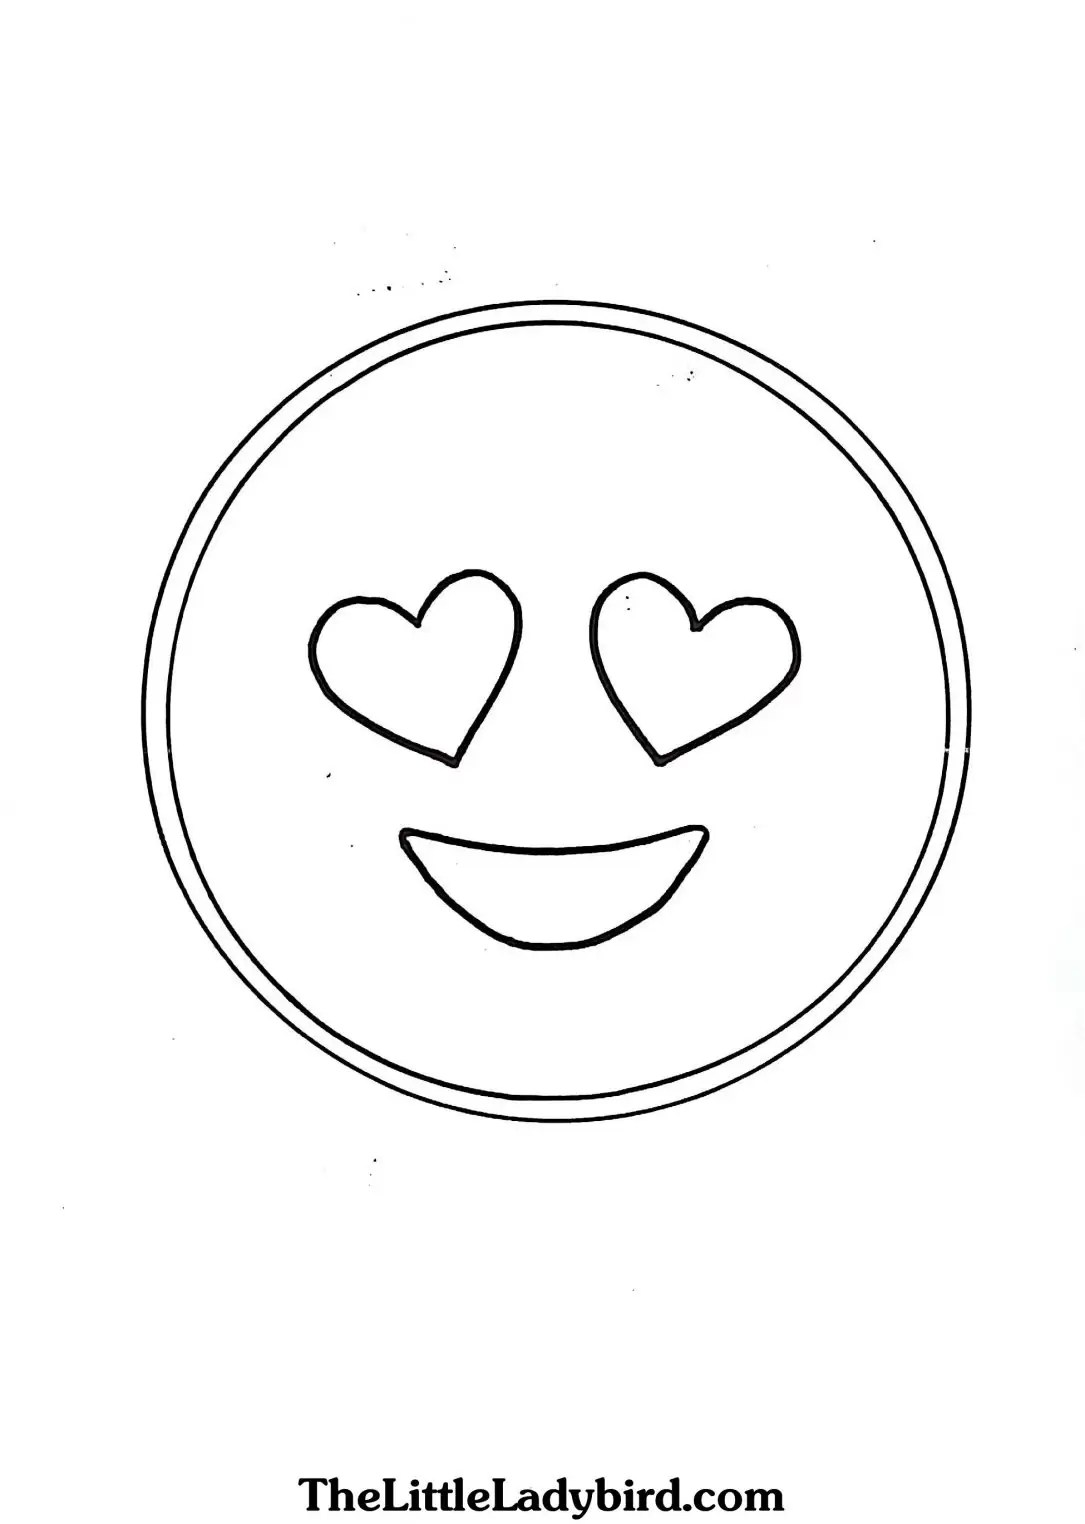 Emoji coloring pages love free coloring pages, i love usa coloring pages